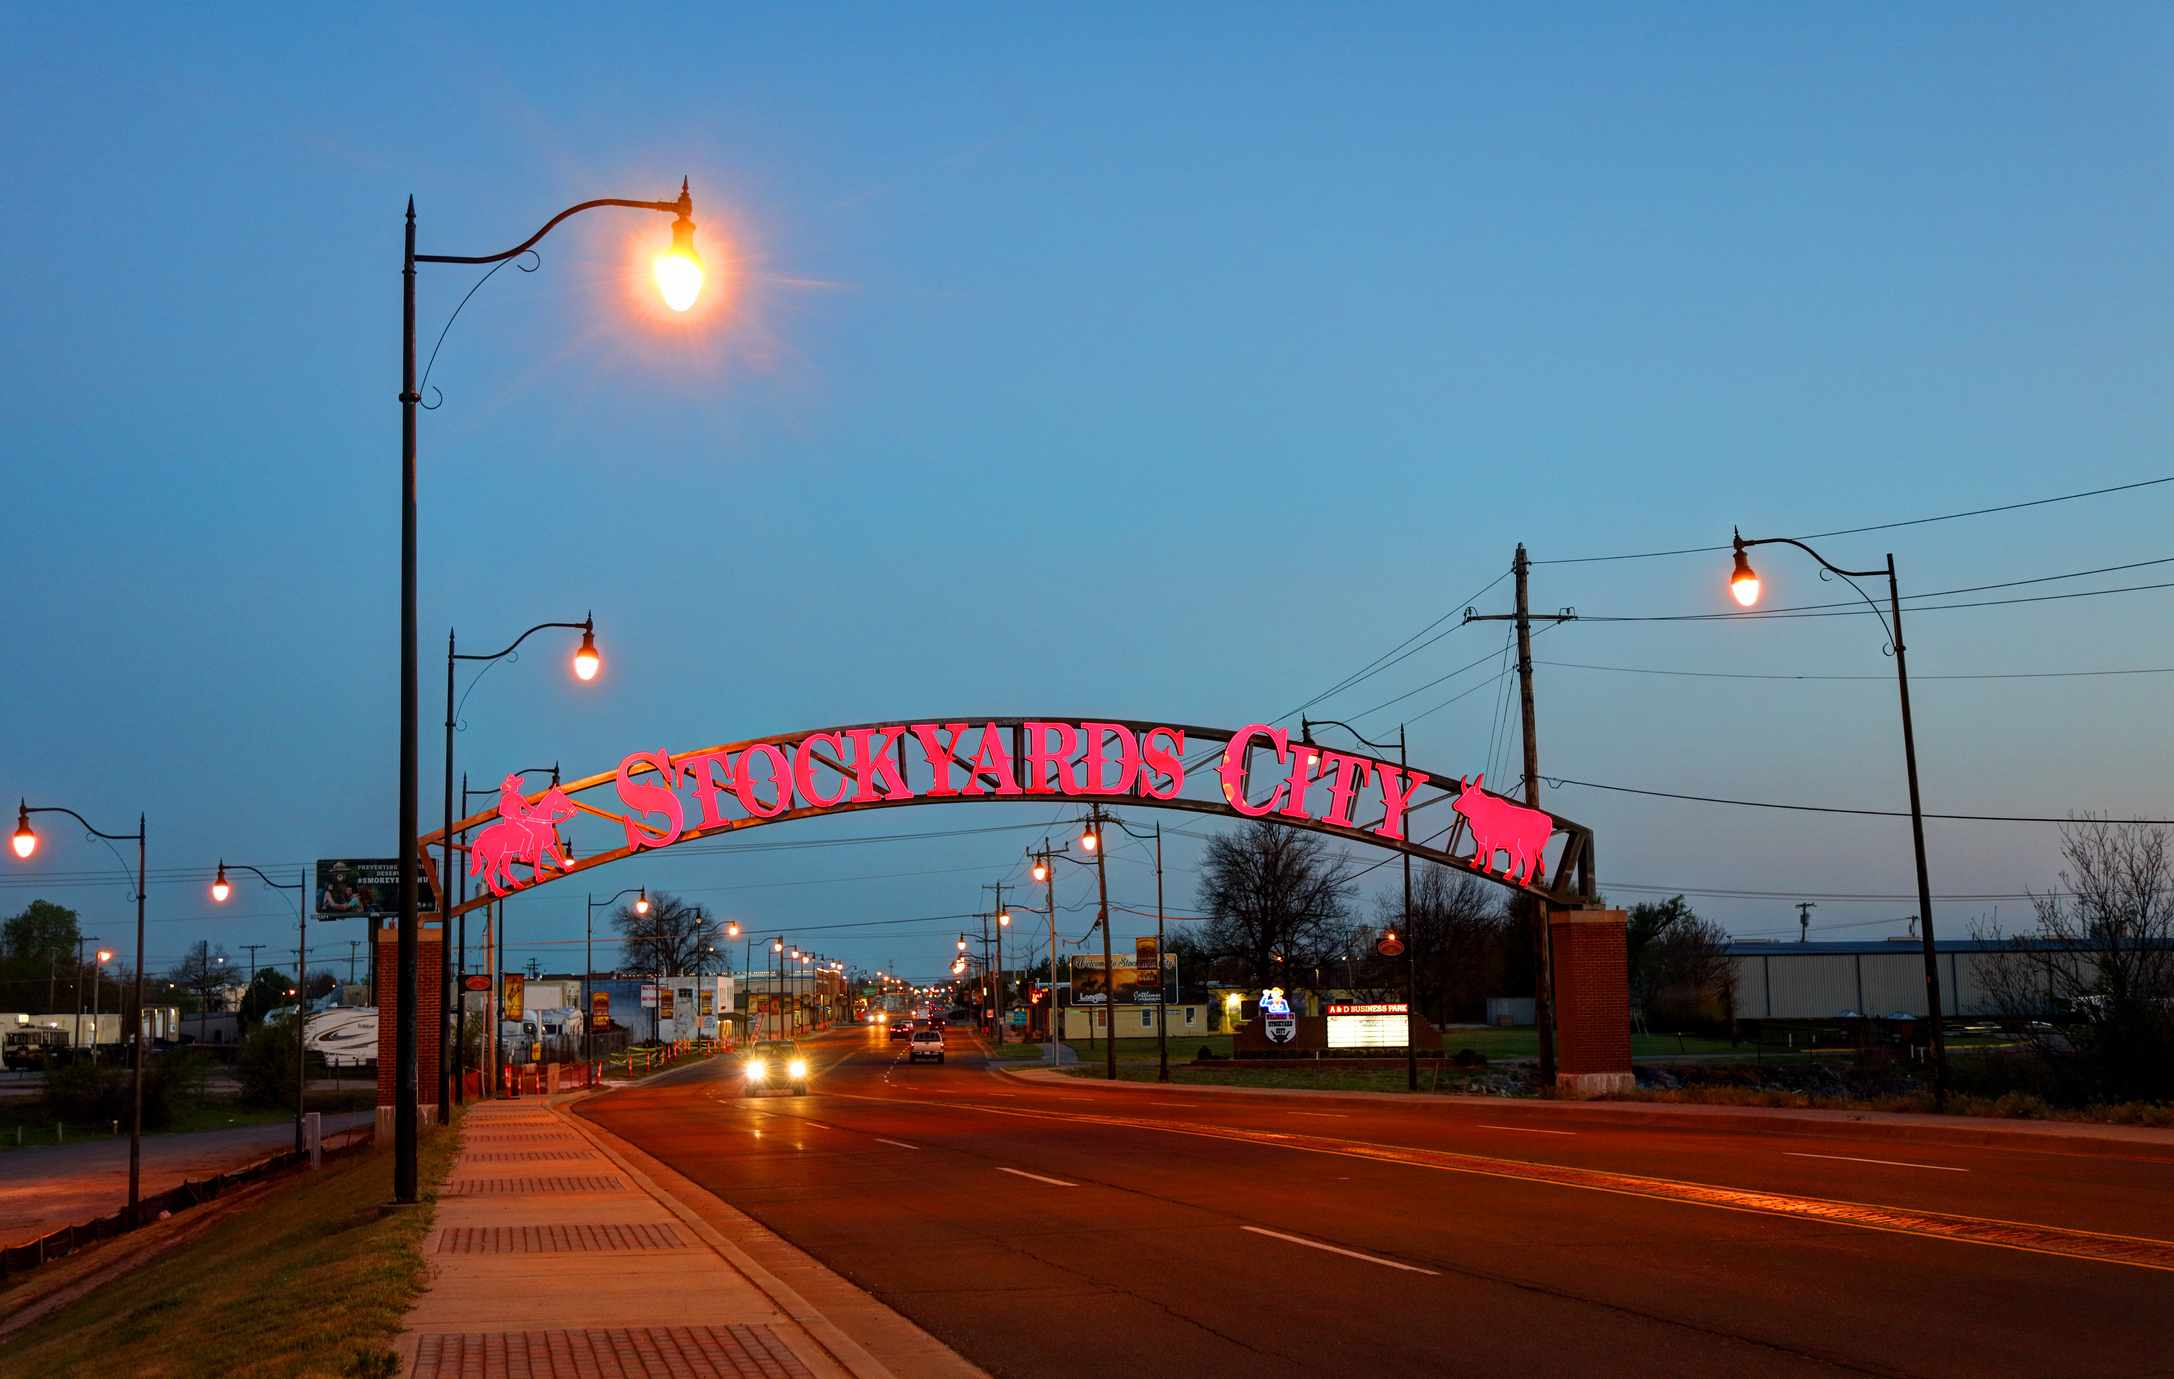 Evening view of the Stockyards City entrance sign in the heart of Oklahoma City's colorful history